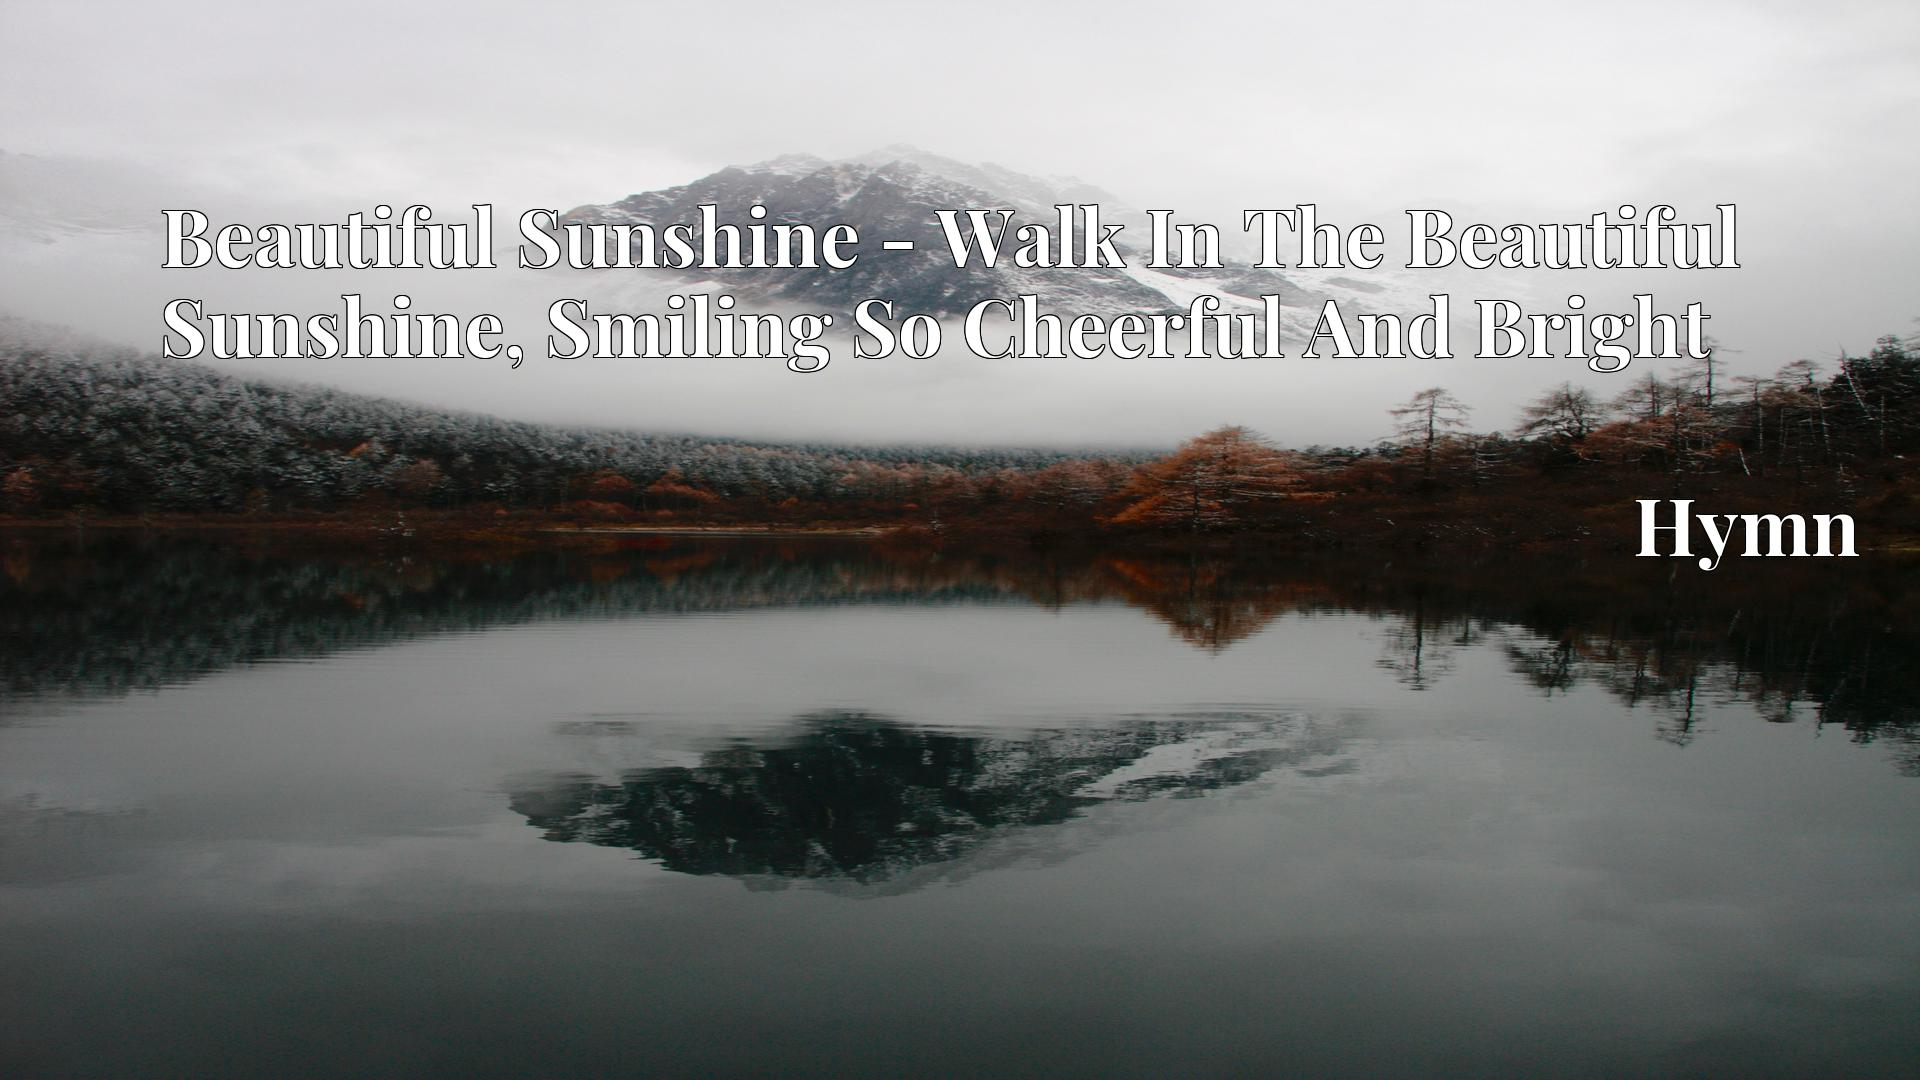 Beautiful Sunshine - Walk In The Beautiful Sunshine, Smiling So Cheerful And Bright - Hymn